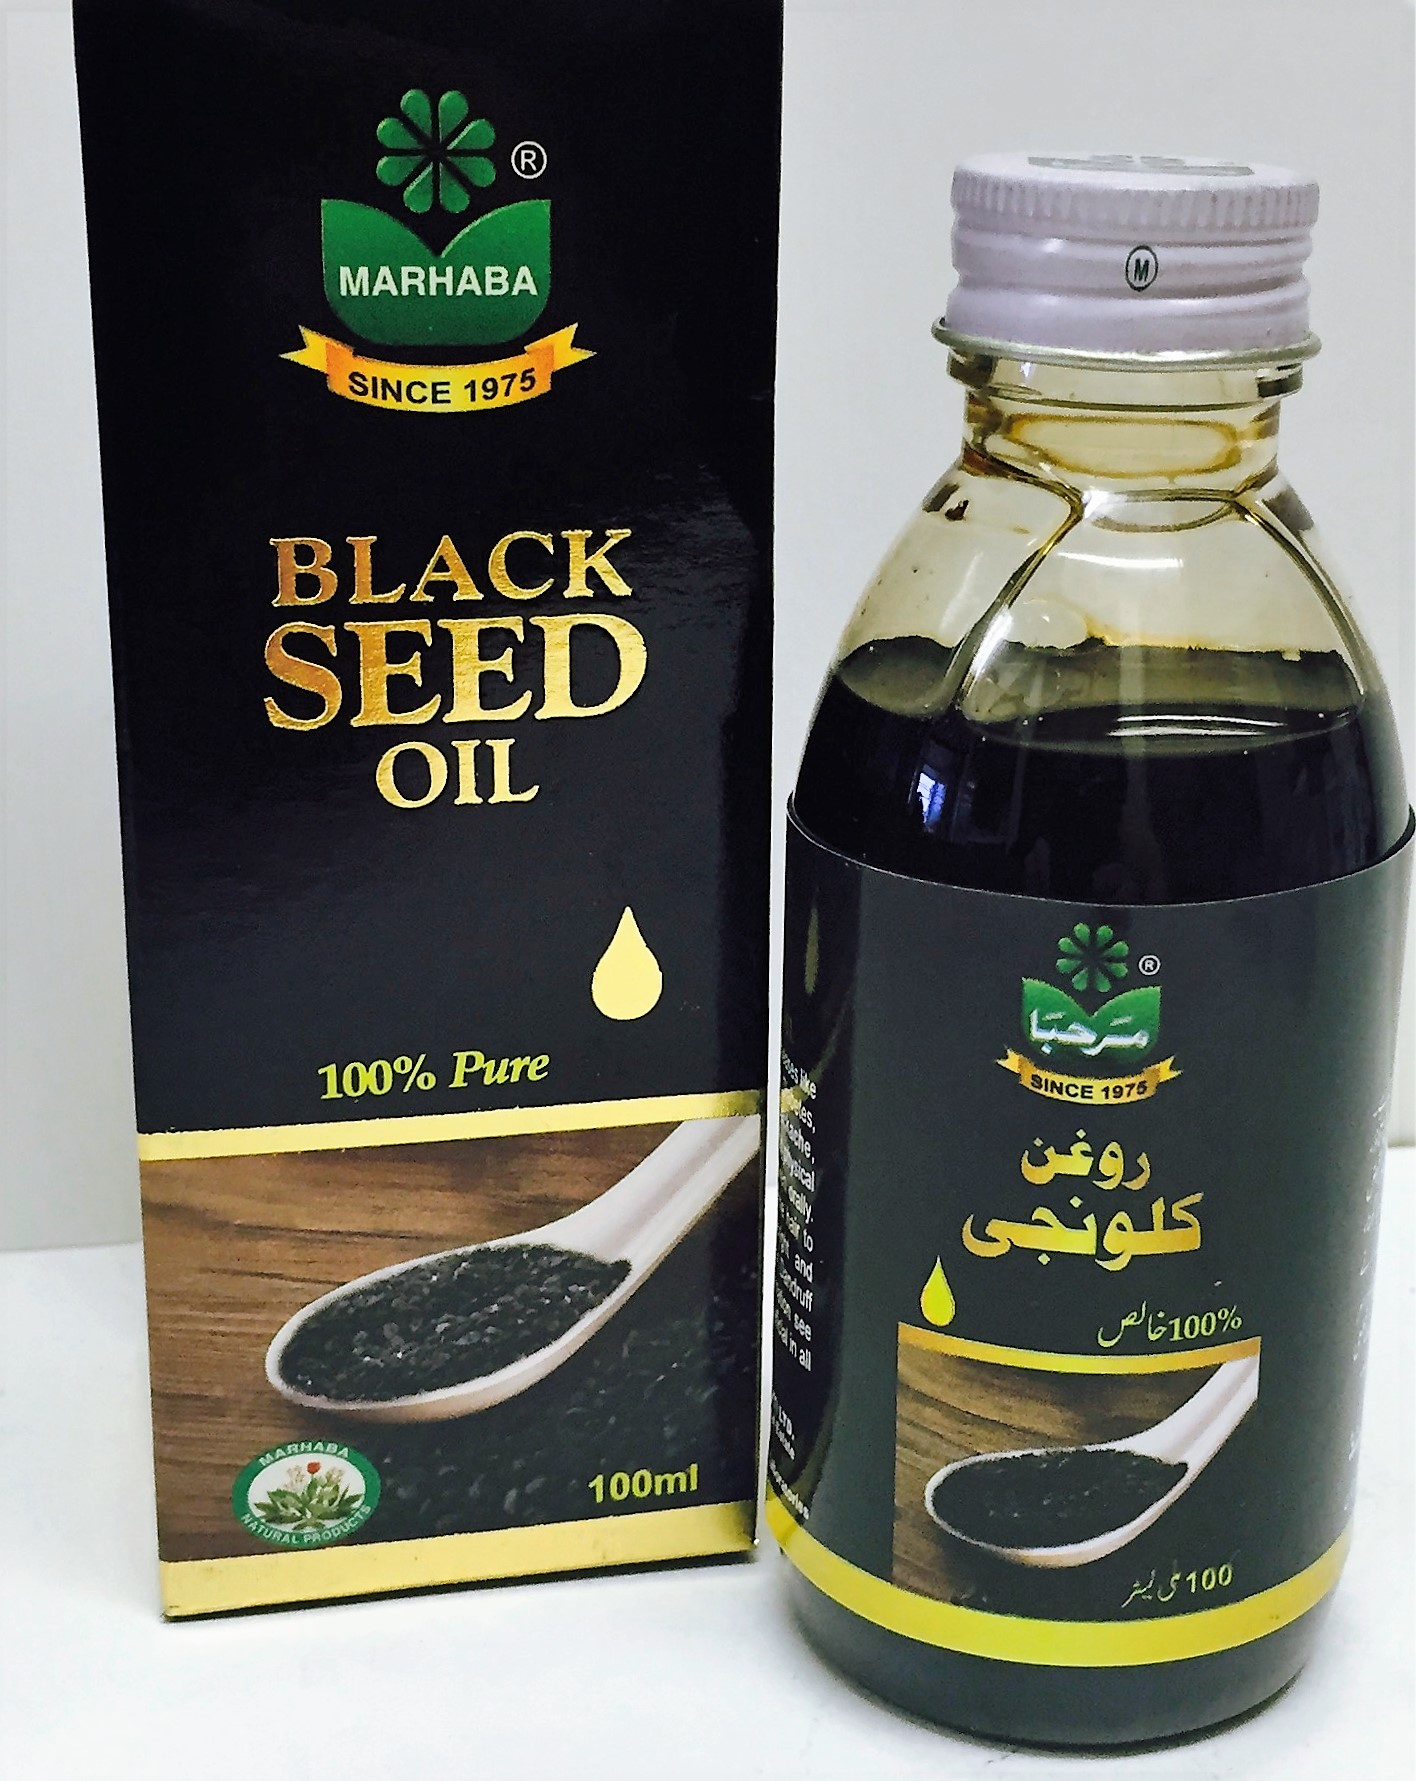 How To Use Black Seed Oil (Kalonji) For Hair Growth And Baldness How To Use Black Seed Oil (Kalonji) For Hair Growth And Baldness new pictures